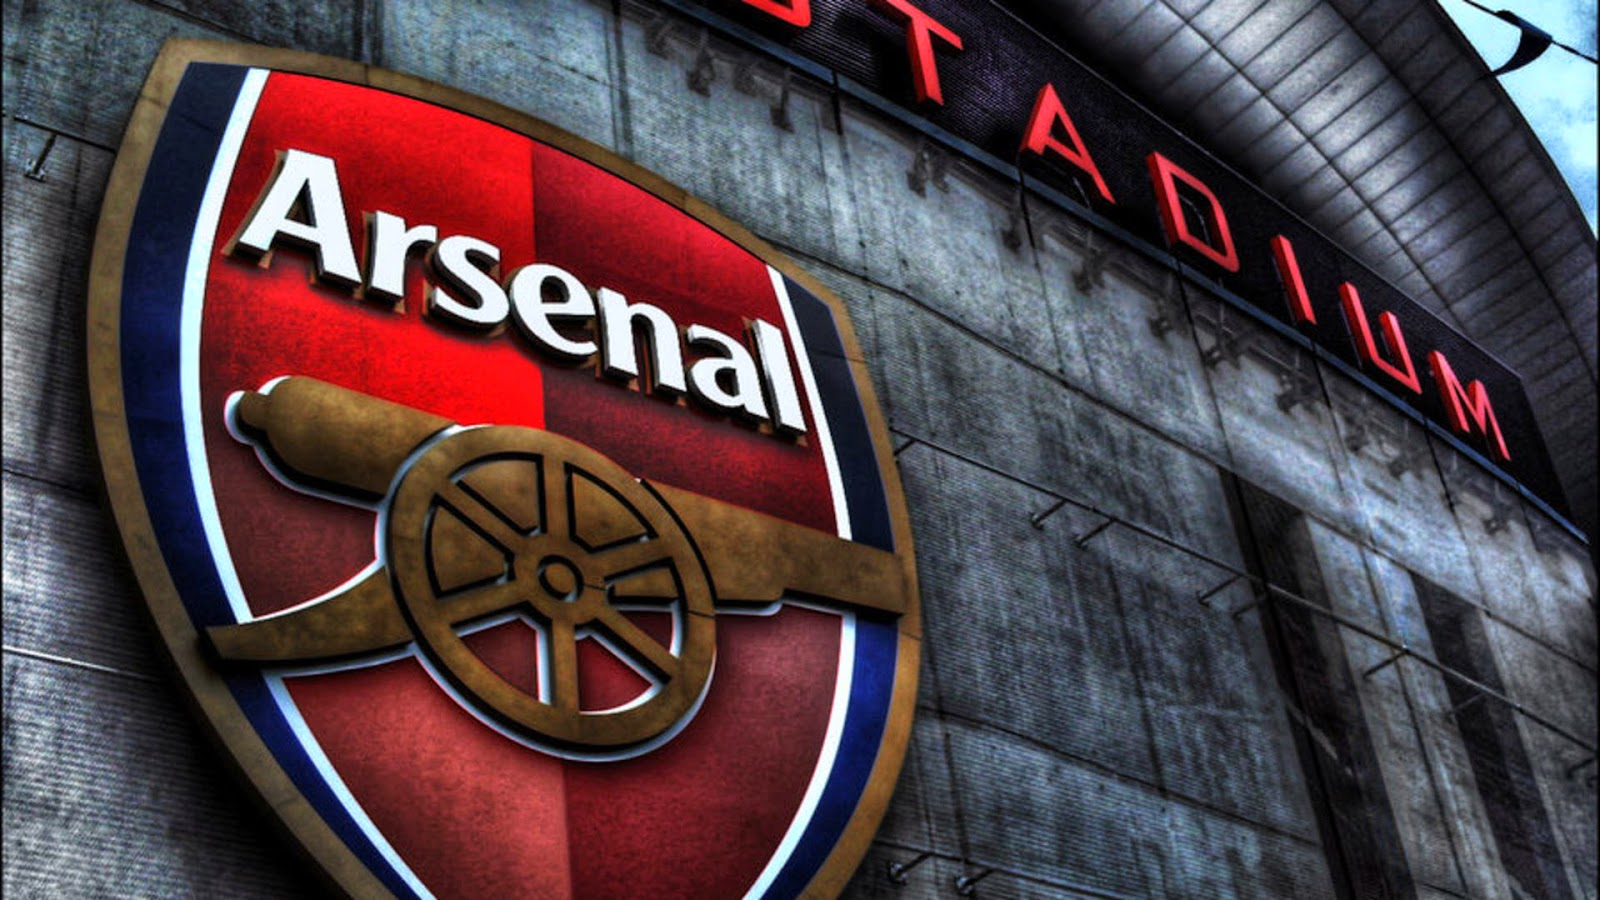 arsenal football club fc wallpapers stadium backgrounds team arsena emirates